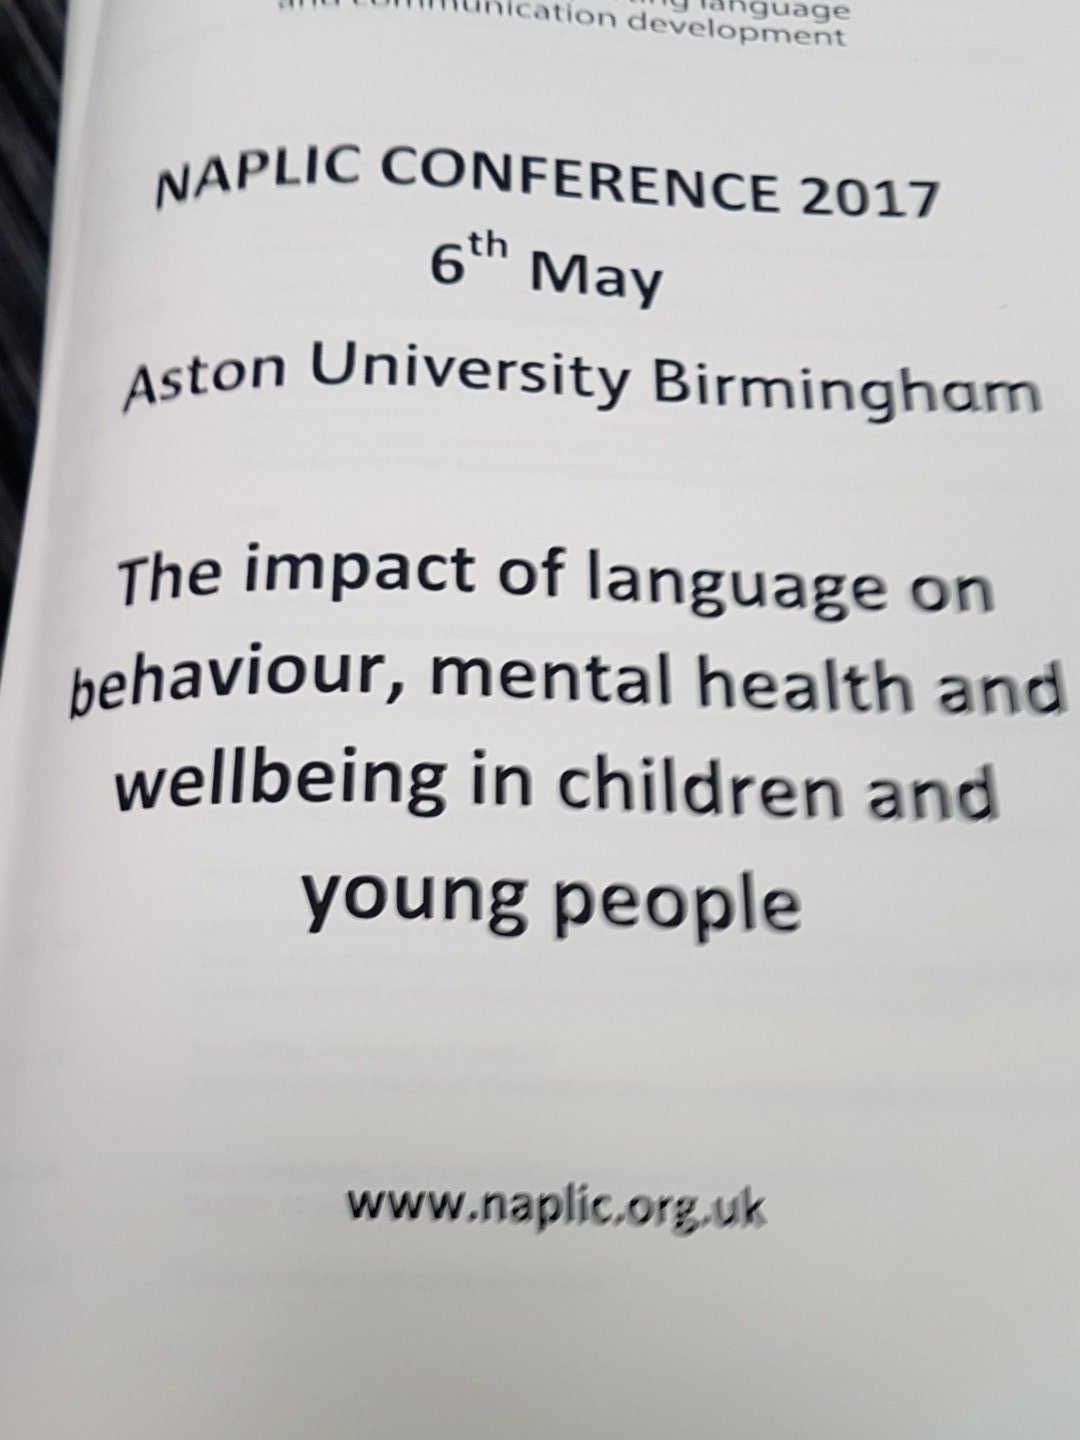 Looking forward to the day! #naplic17 https://t.co/6NrmhWmPo5